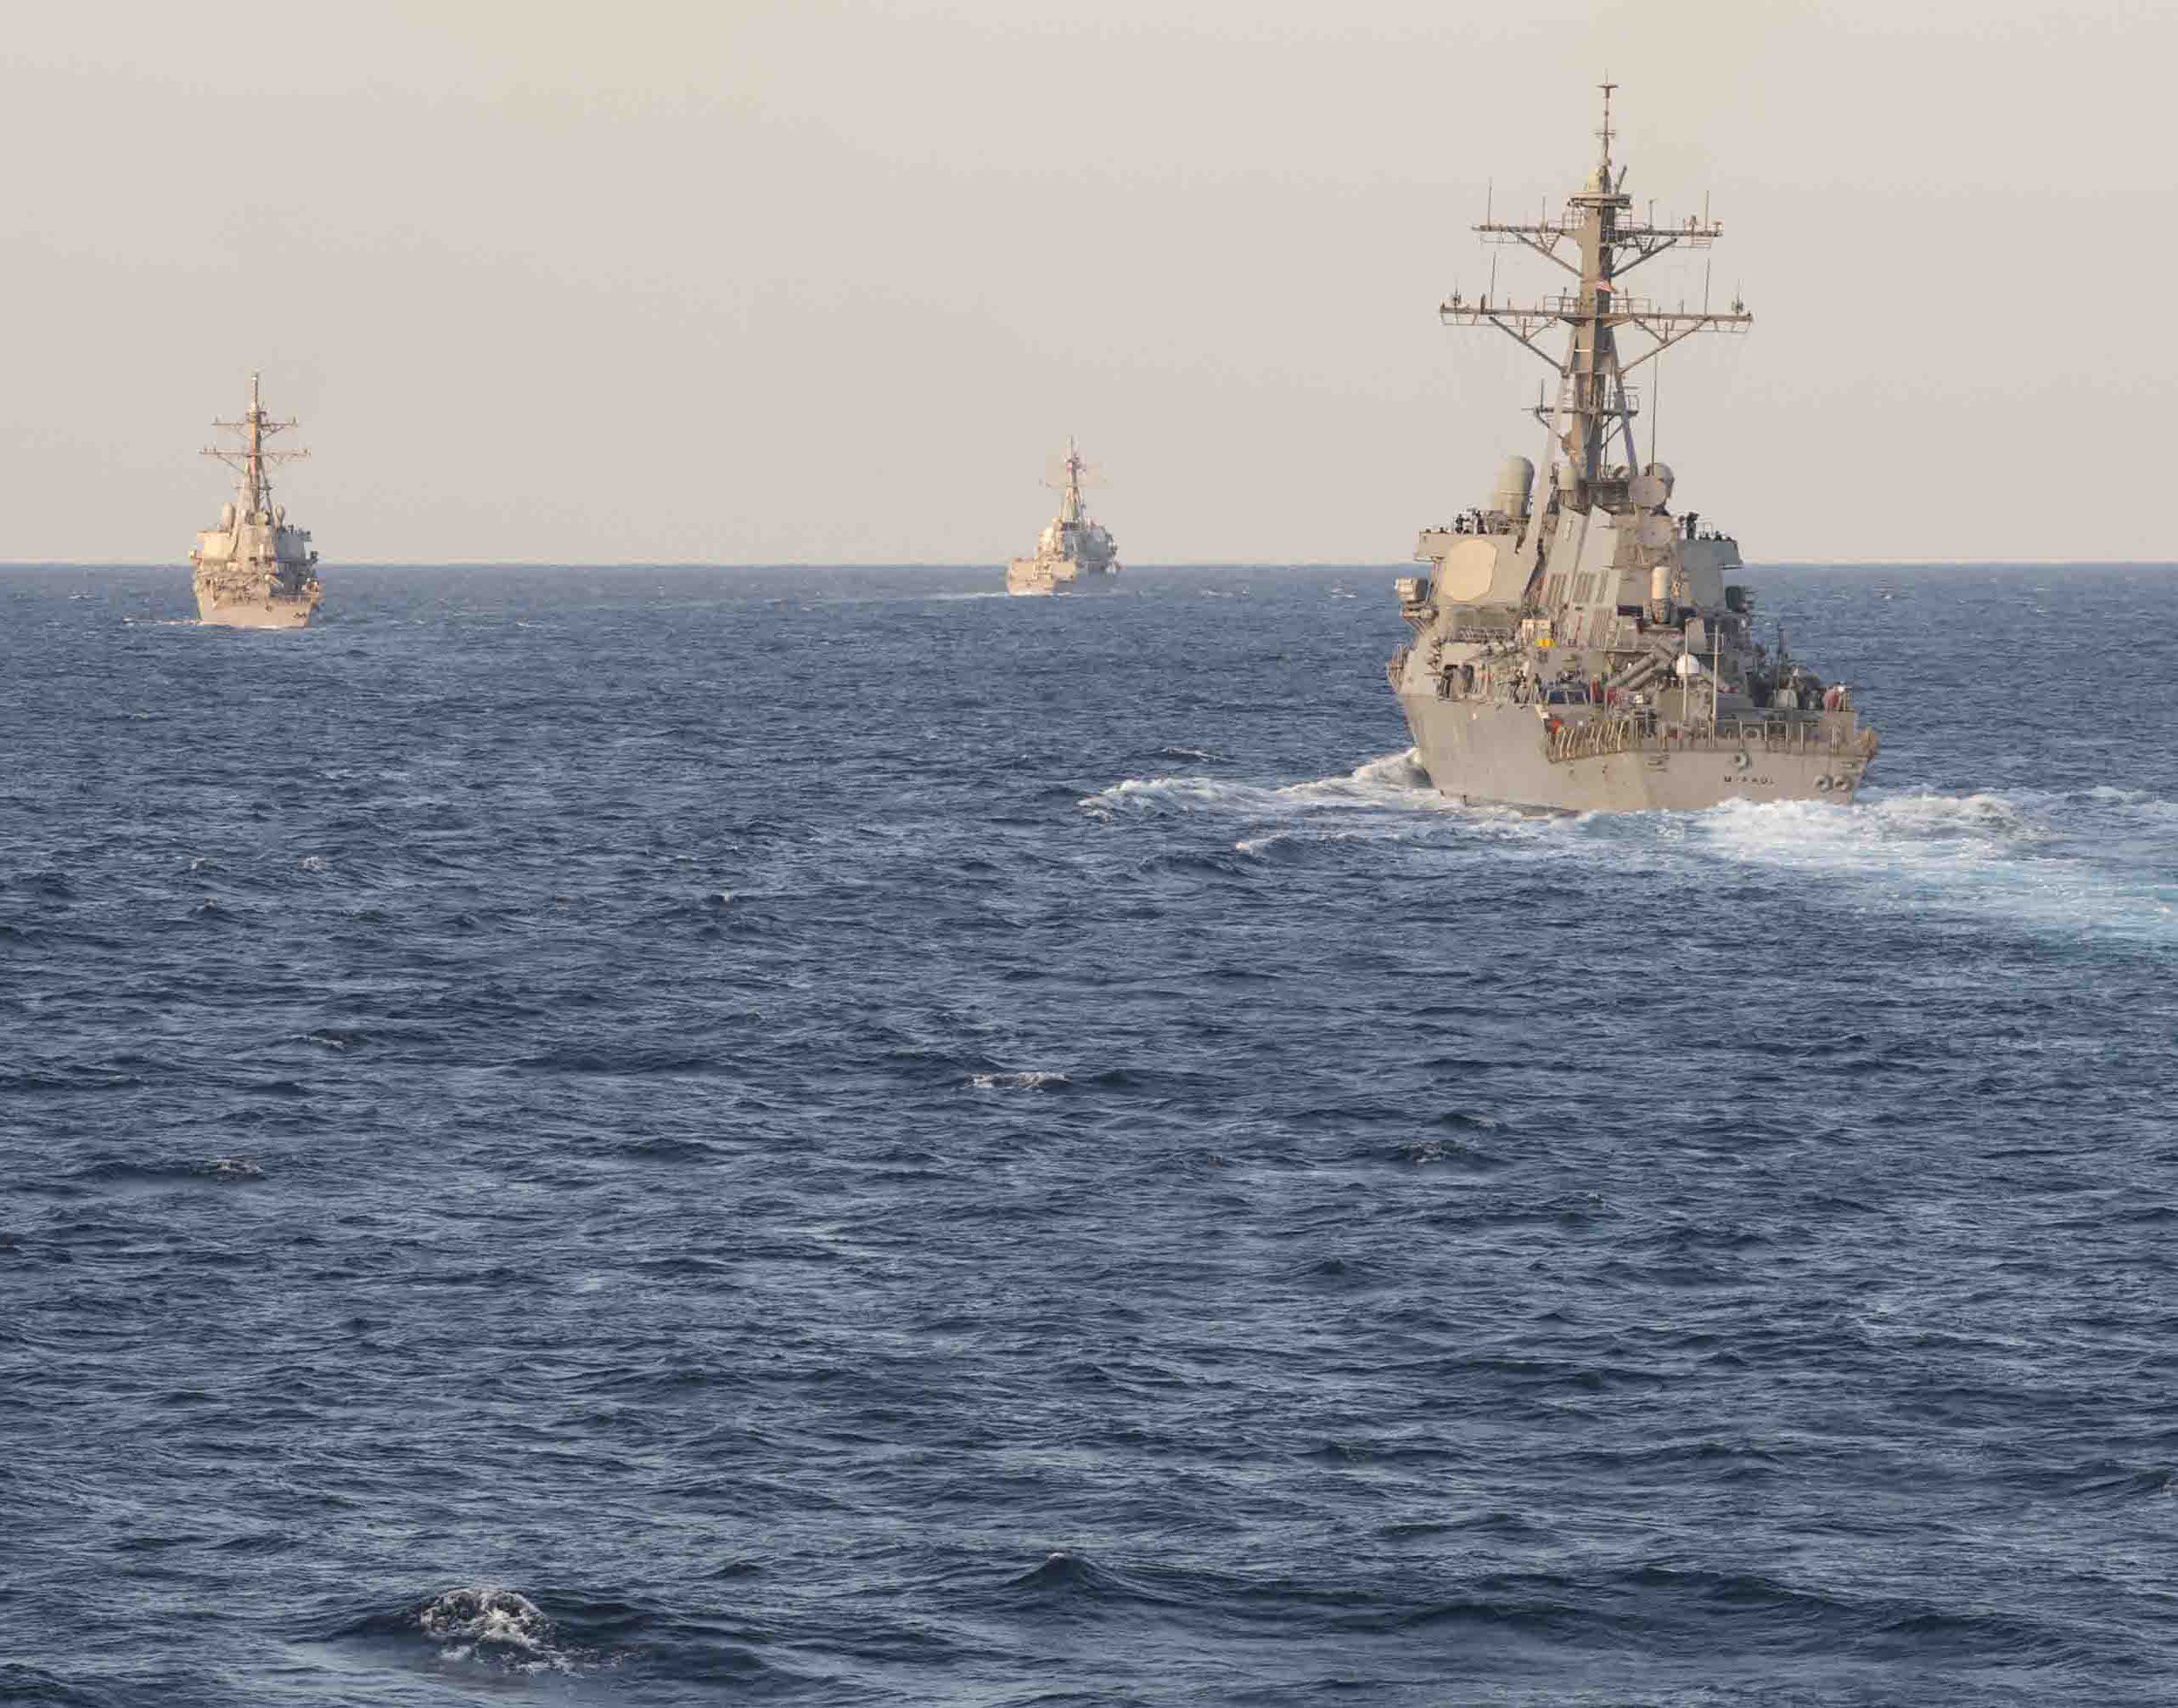 Arleigh Burke-class guided-missile destroyers USS McFaul (DDG-74), right, USS Laboon (DDG-58), left and USS Winston S. Churchill (DDG-81) conduct a simulated strait transit exercise on Jan. 22, 2015. US Navy Photo